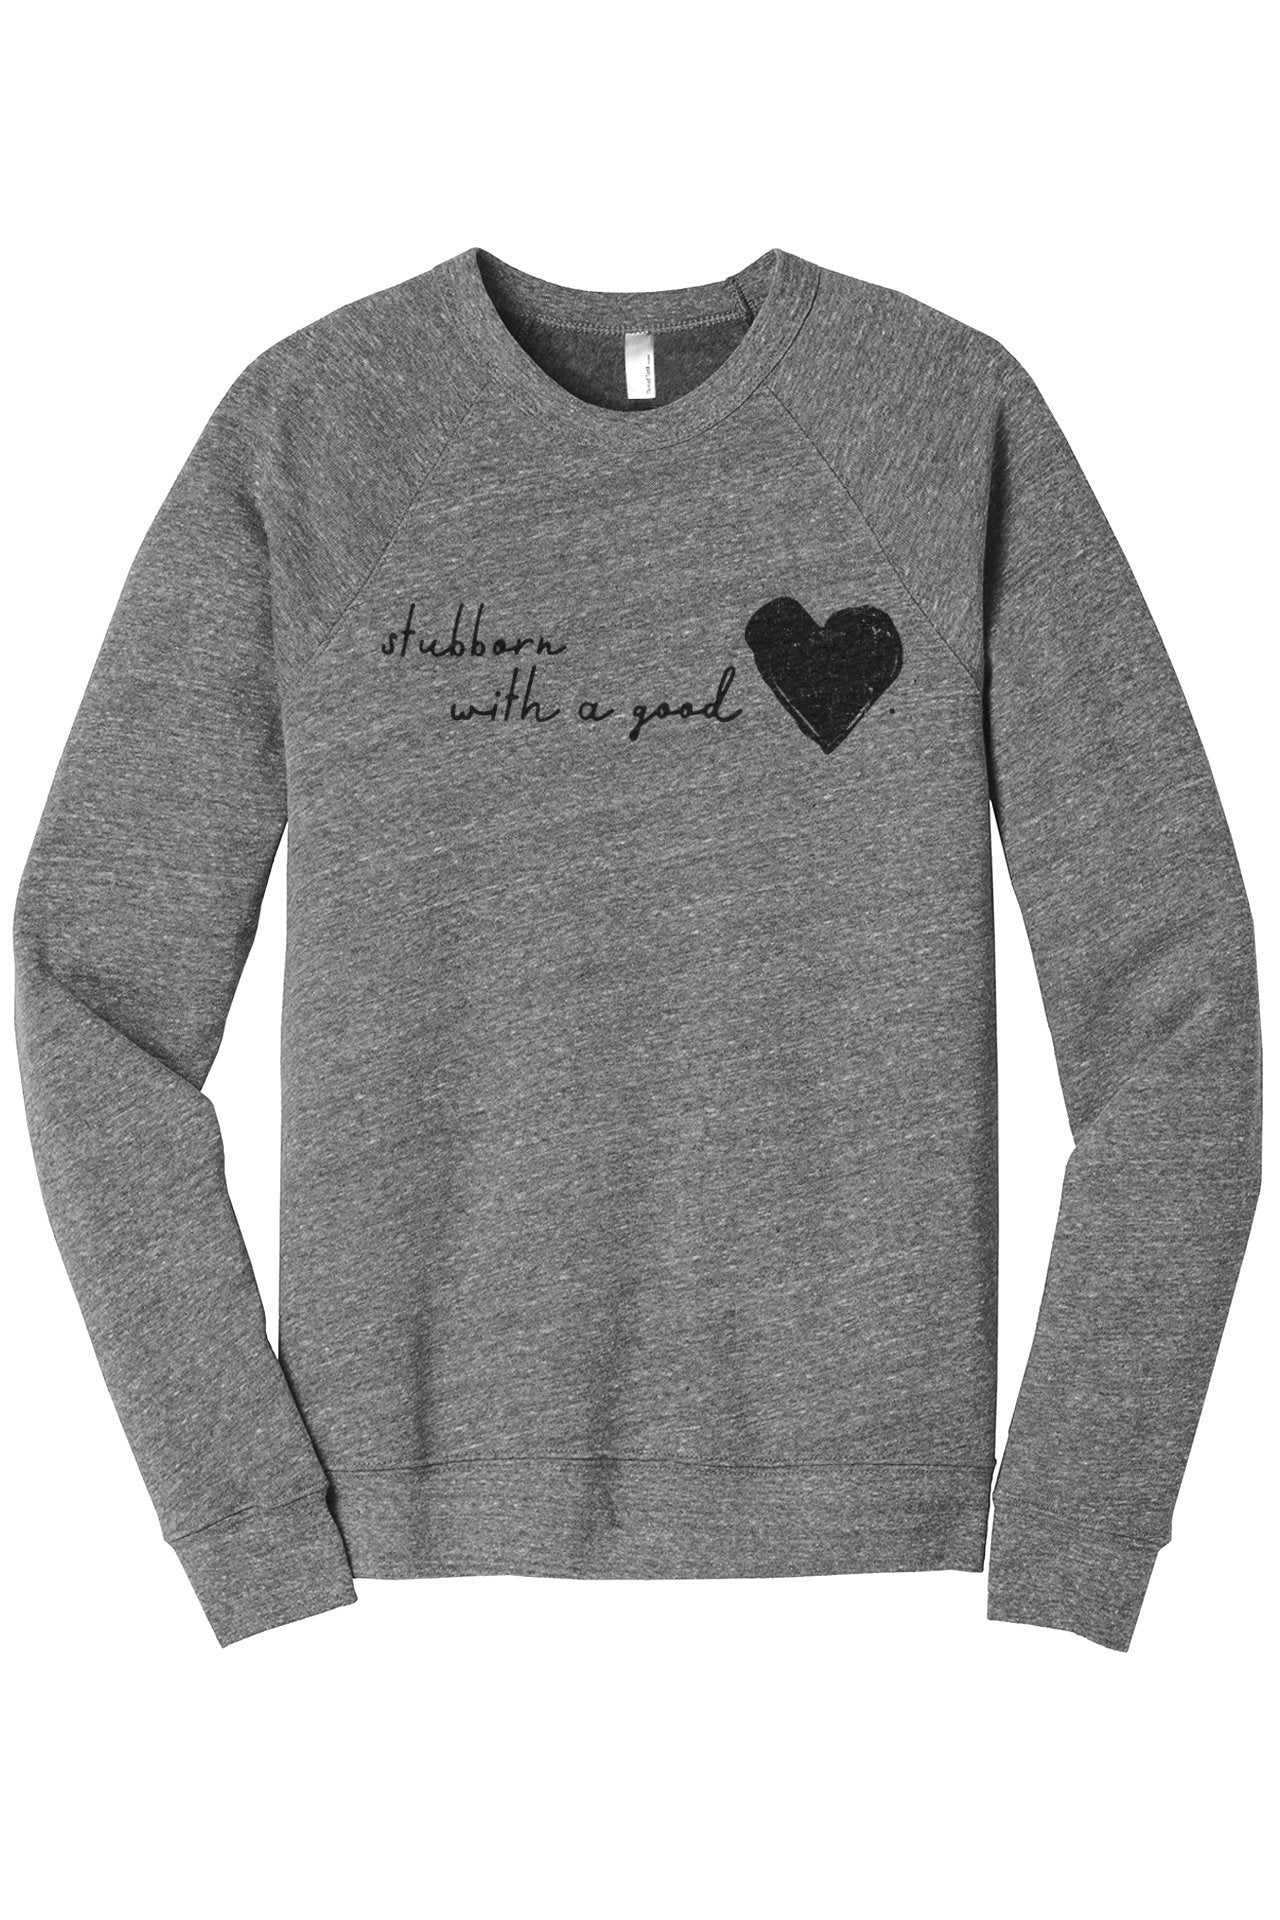 Stubborn With A Good Heart Women's Cozy Fleece Longsleeves Sweater Heather Grey FRONT